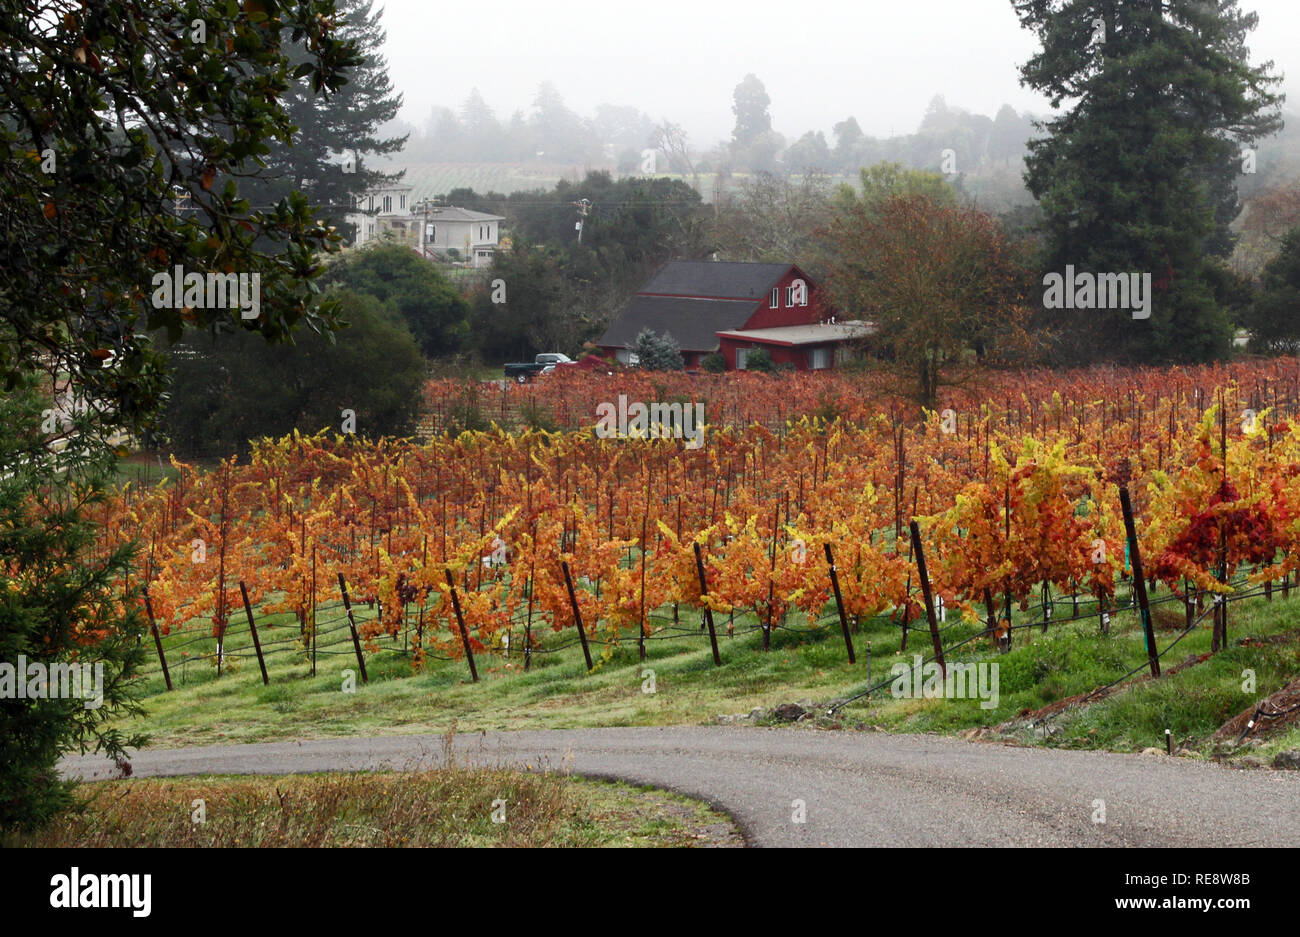 Vineyard on Fire - Vibrant fall colors ignite a small vineyard. Russian River Valley, Sonoma County, California, USA - Stock Image